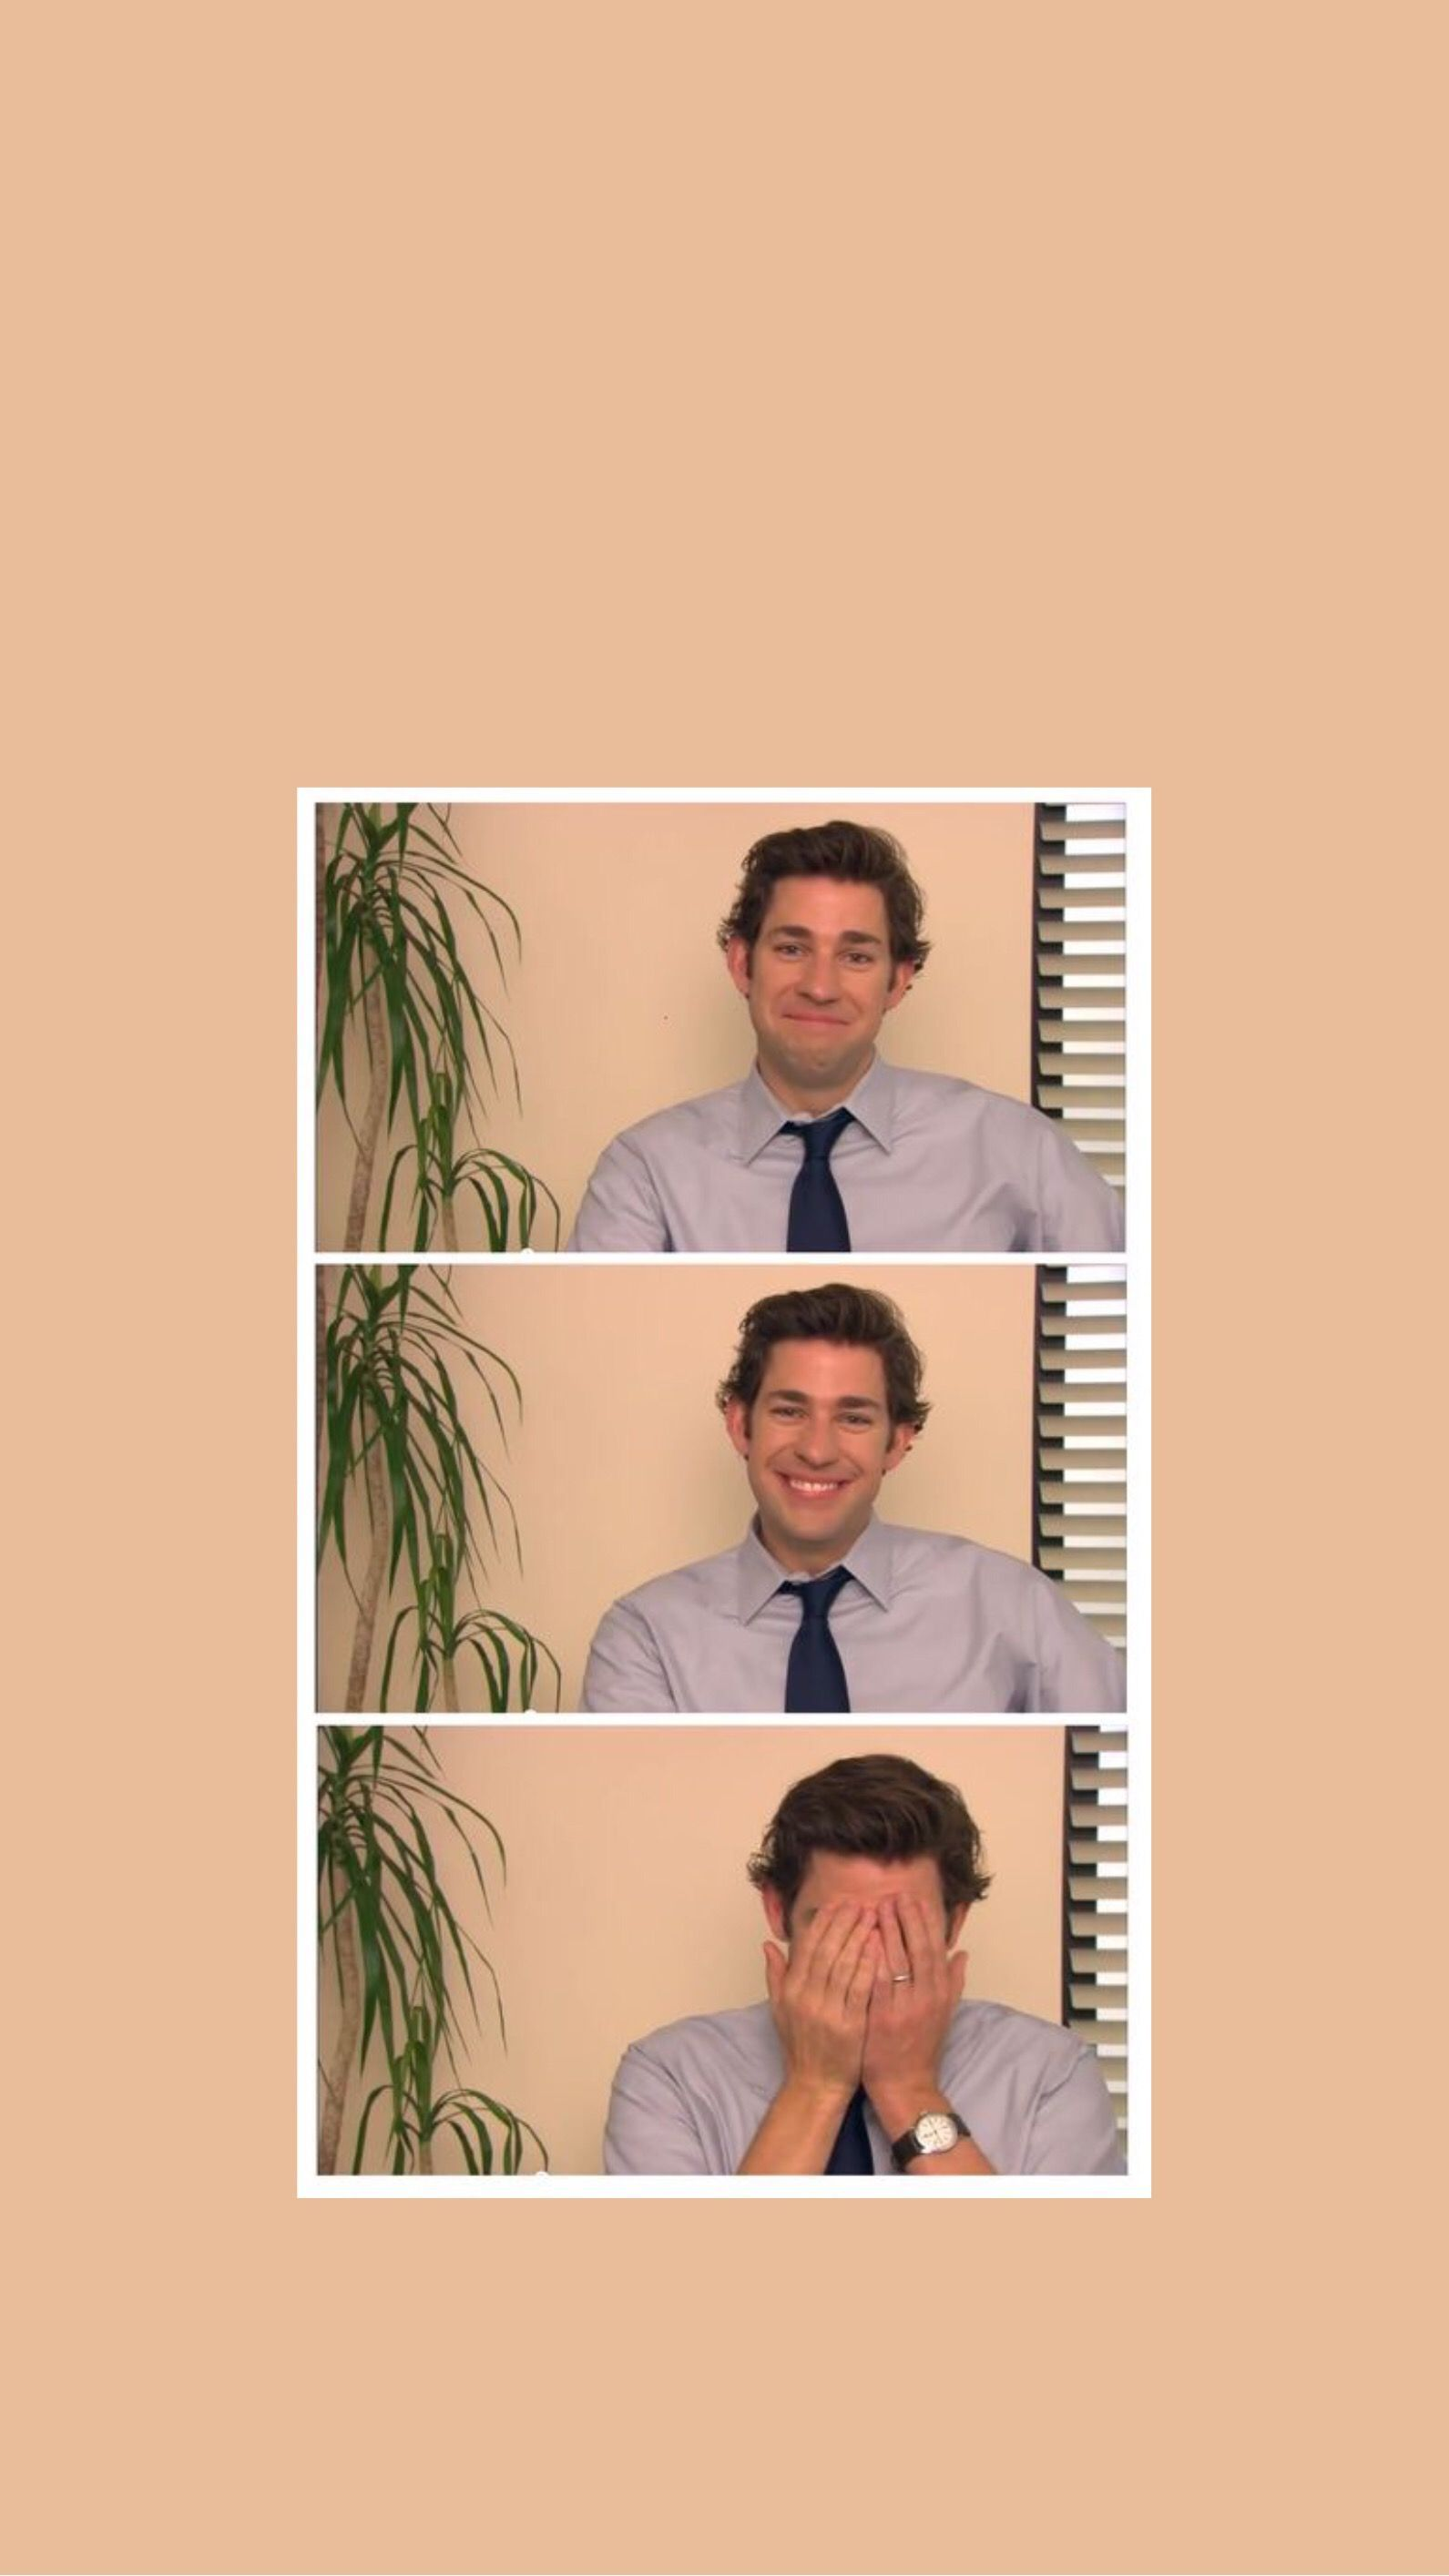 Pin By Thia Marie On The Office Office Wallpaper The Office Stickers The Office Jim